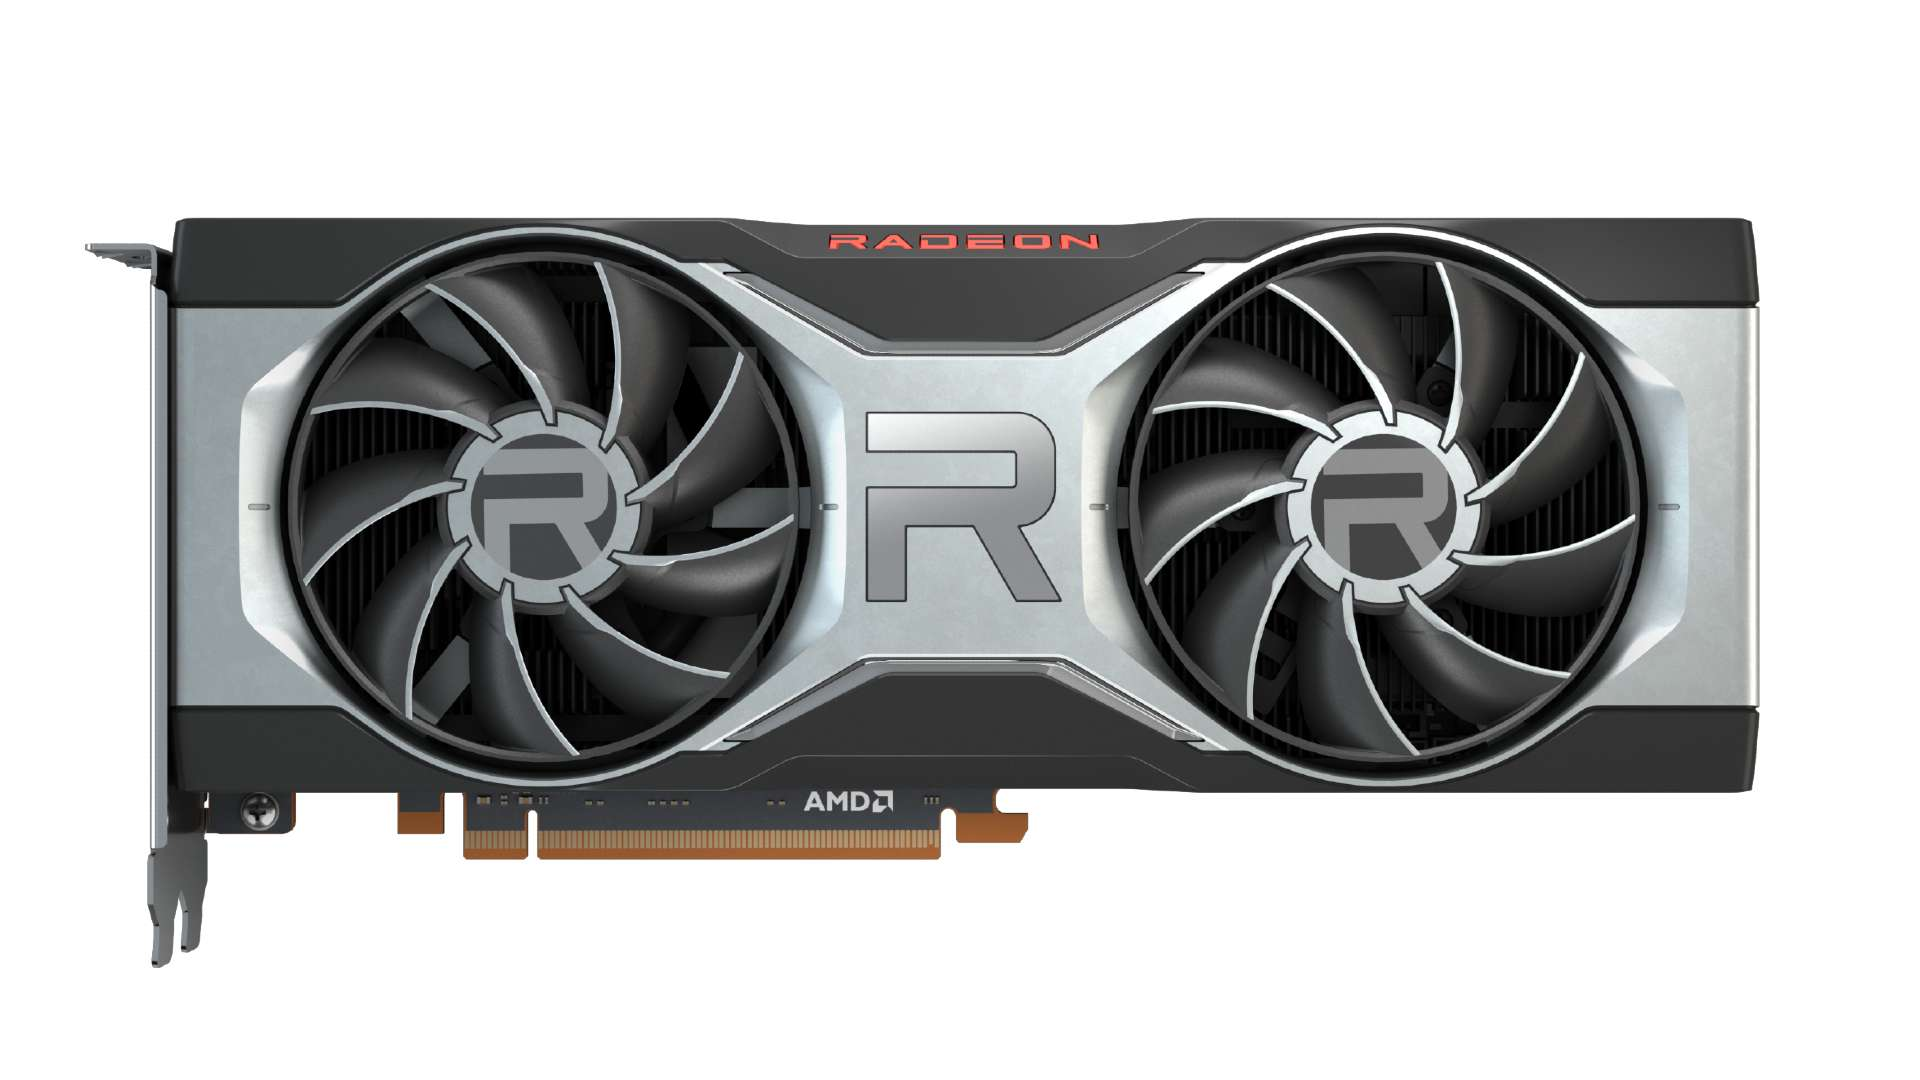 AMD RX 6700 XT reviews roundup – what do the critics think?